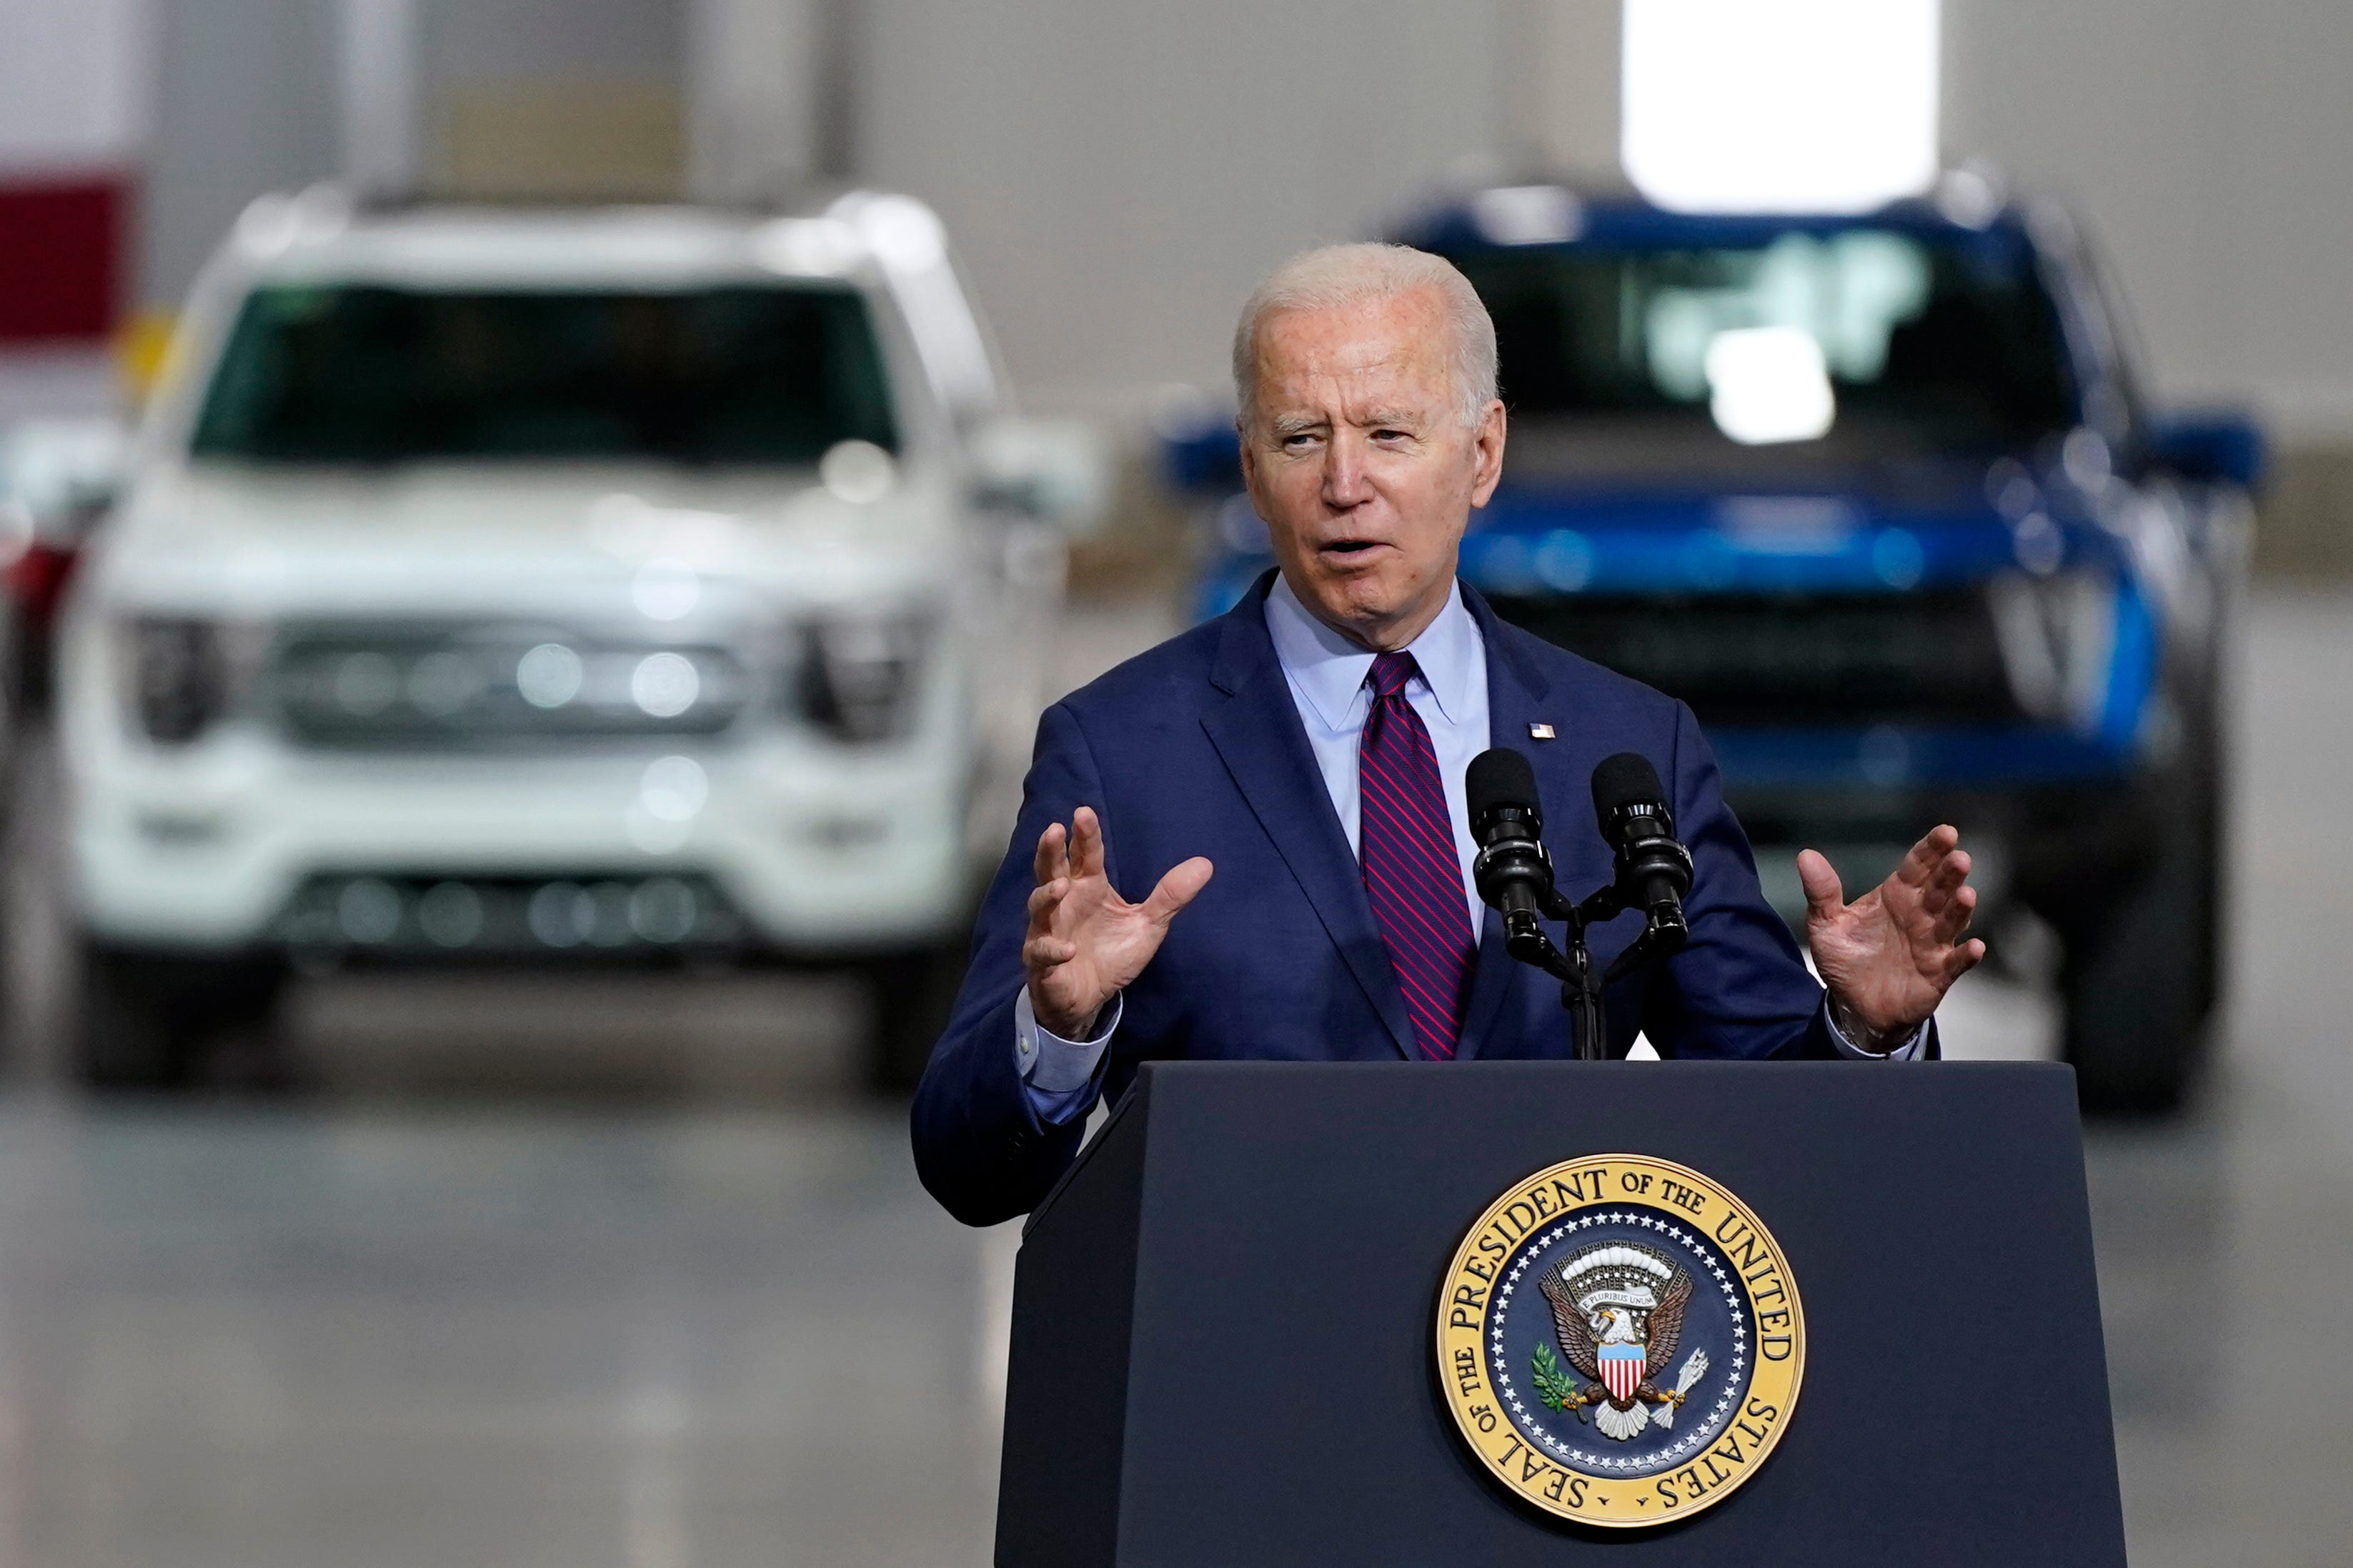 President Biden to pitch infrastructure bill, 'Build Back Better' plan during Howell trip